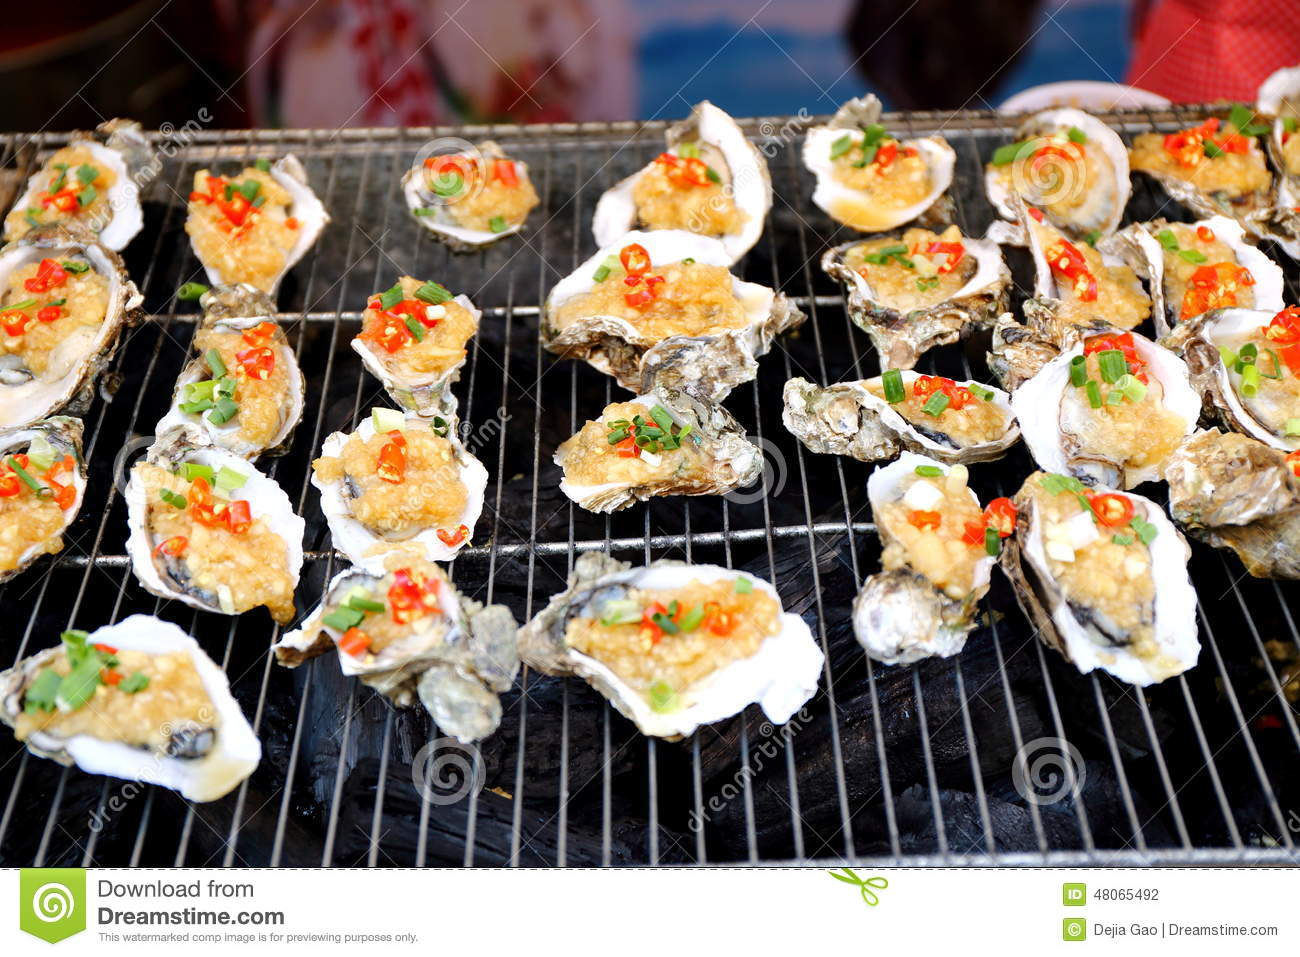 Grilled oyster seafood chinese cuisine food stock photo for Asian food cuisine